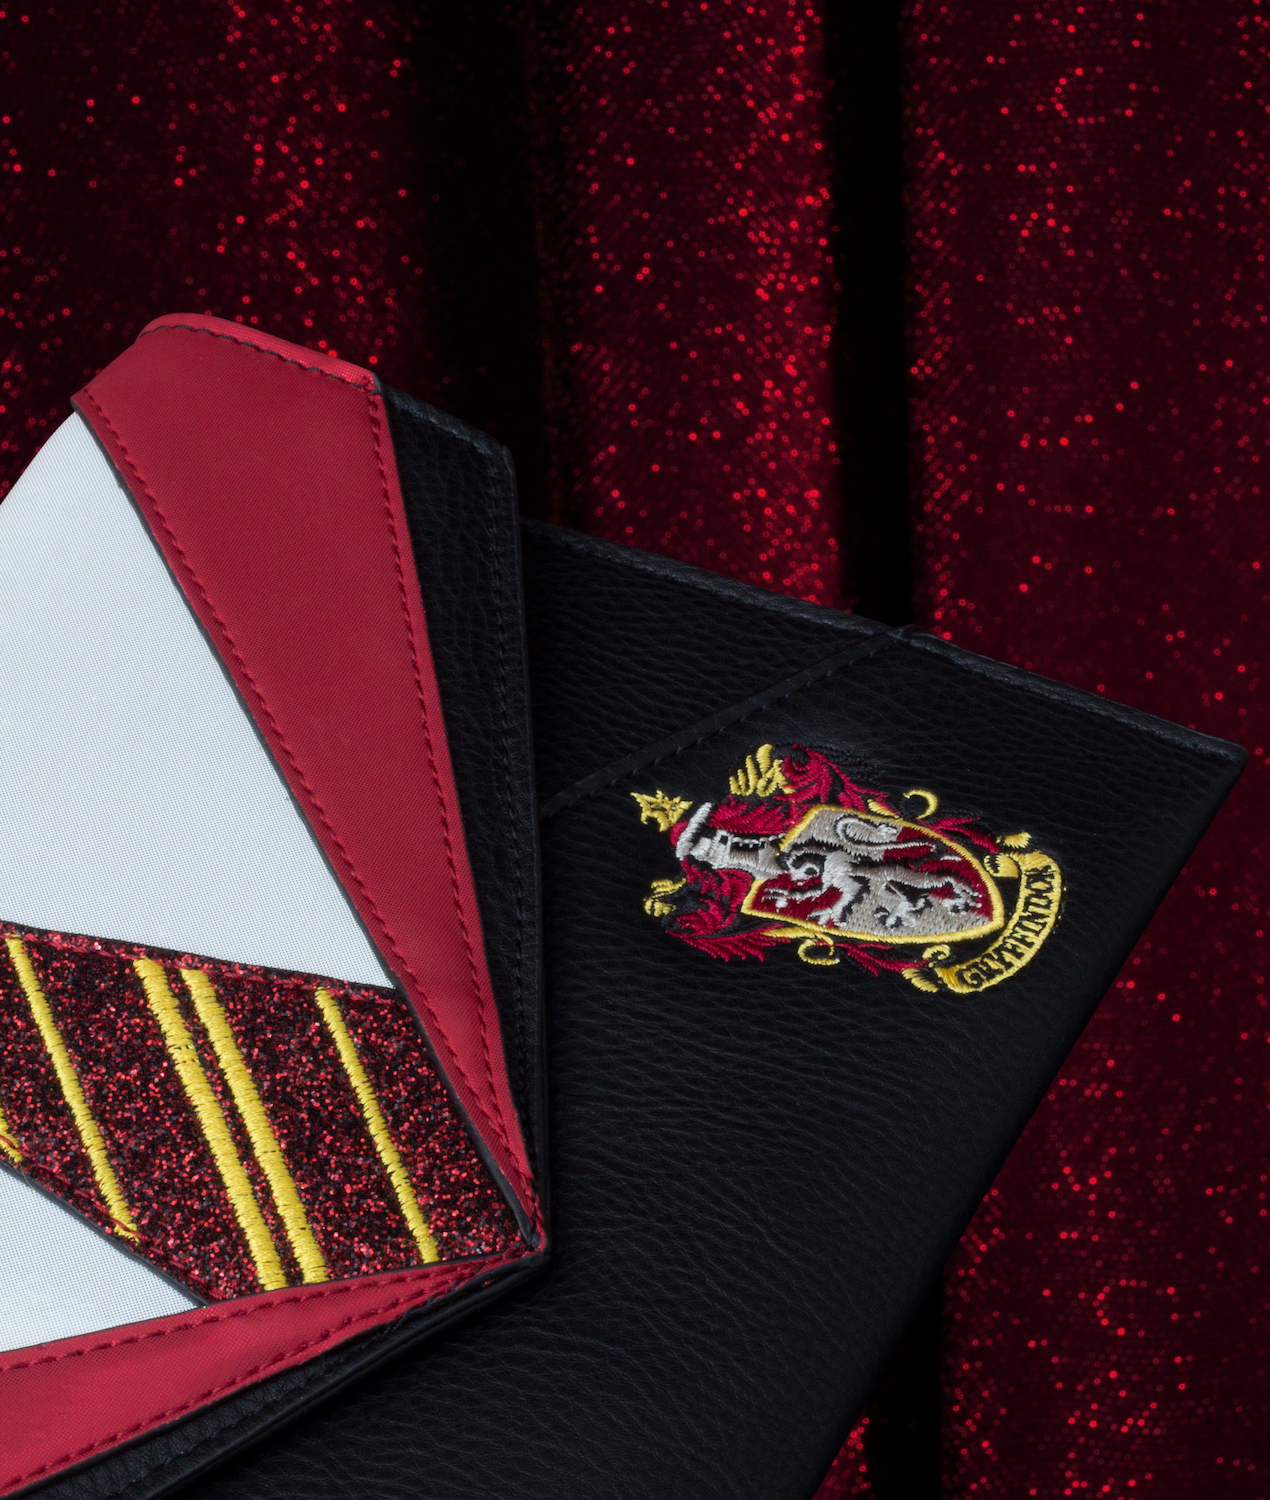 The Danielle Nicole Gryffindor Uniform Clutch is for the courageous and determined.